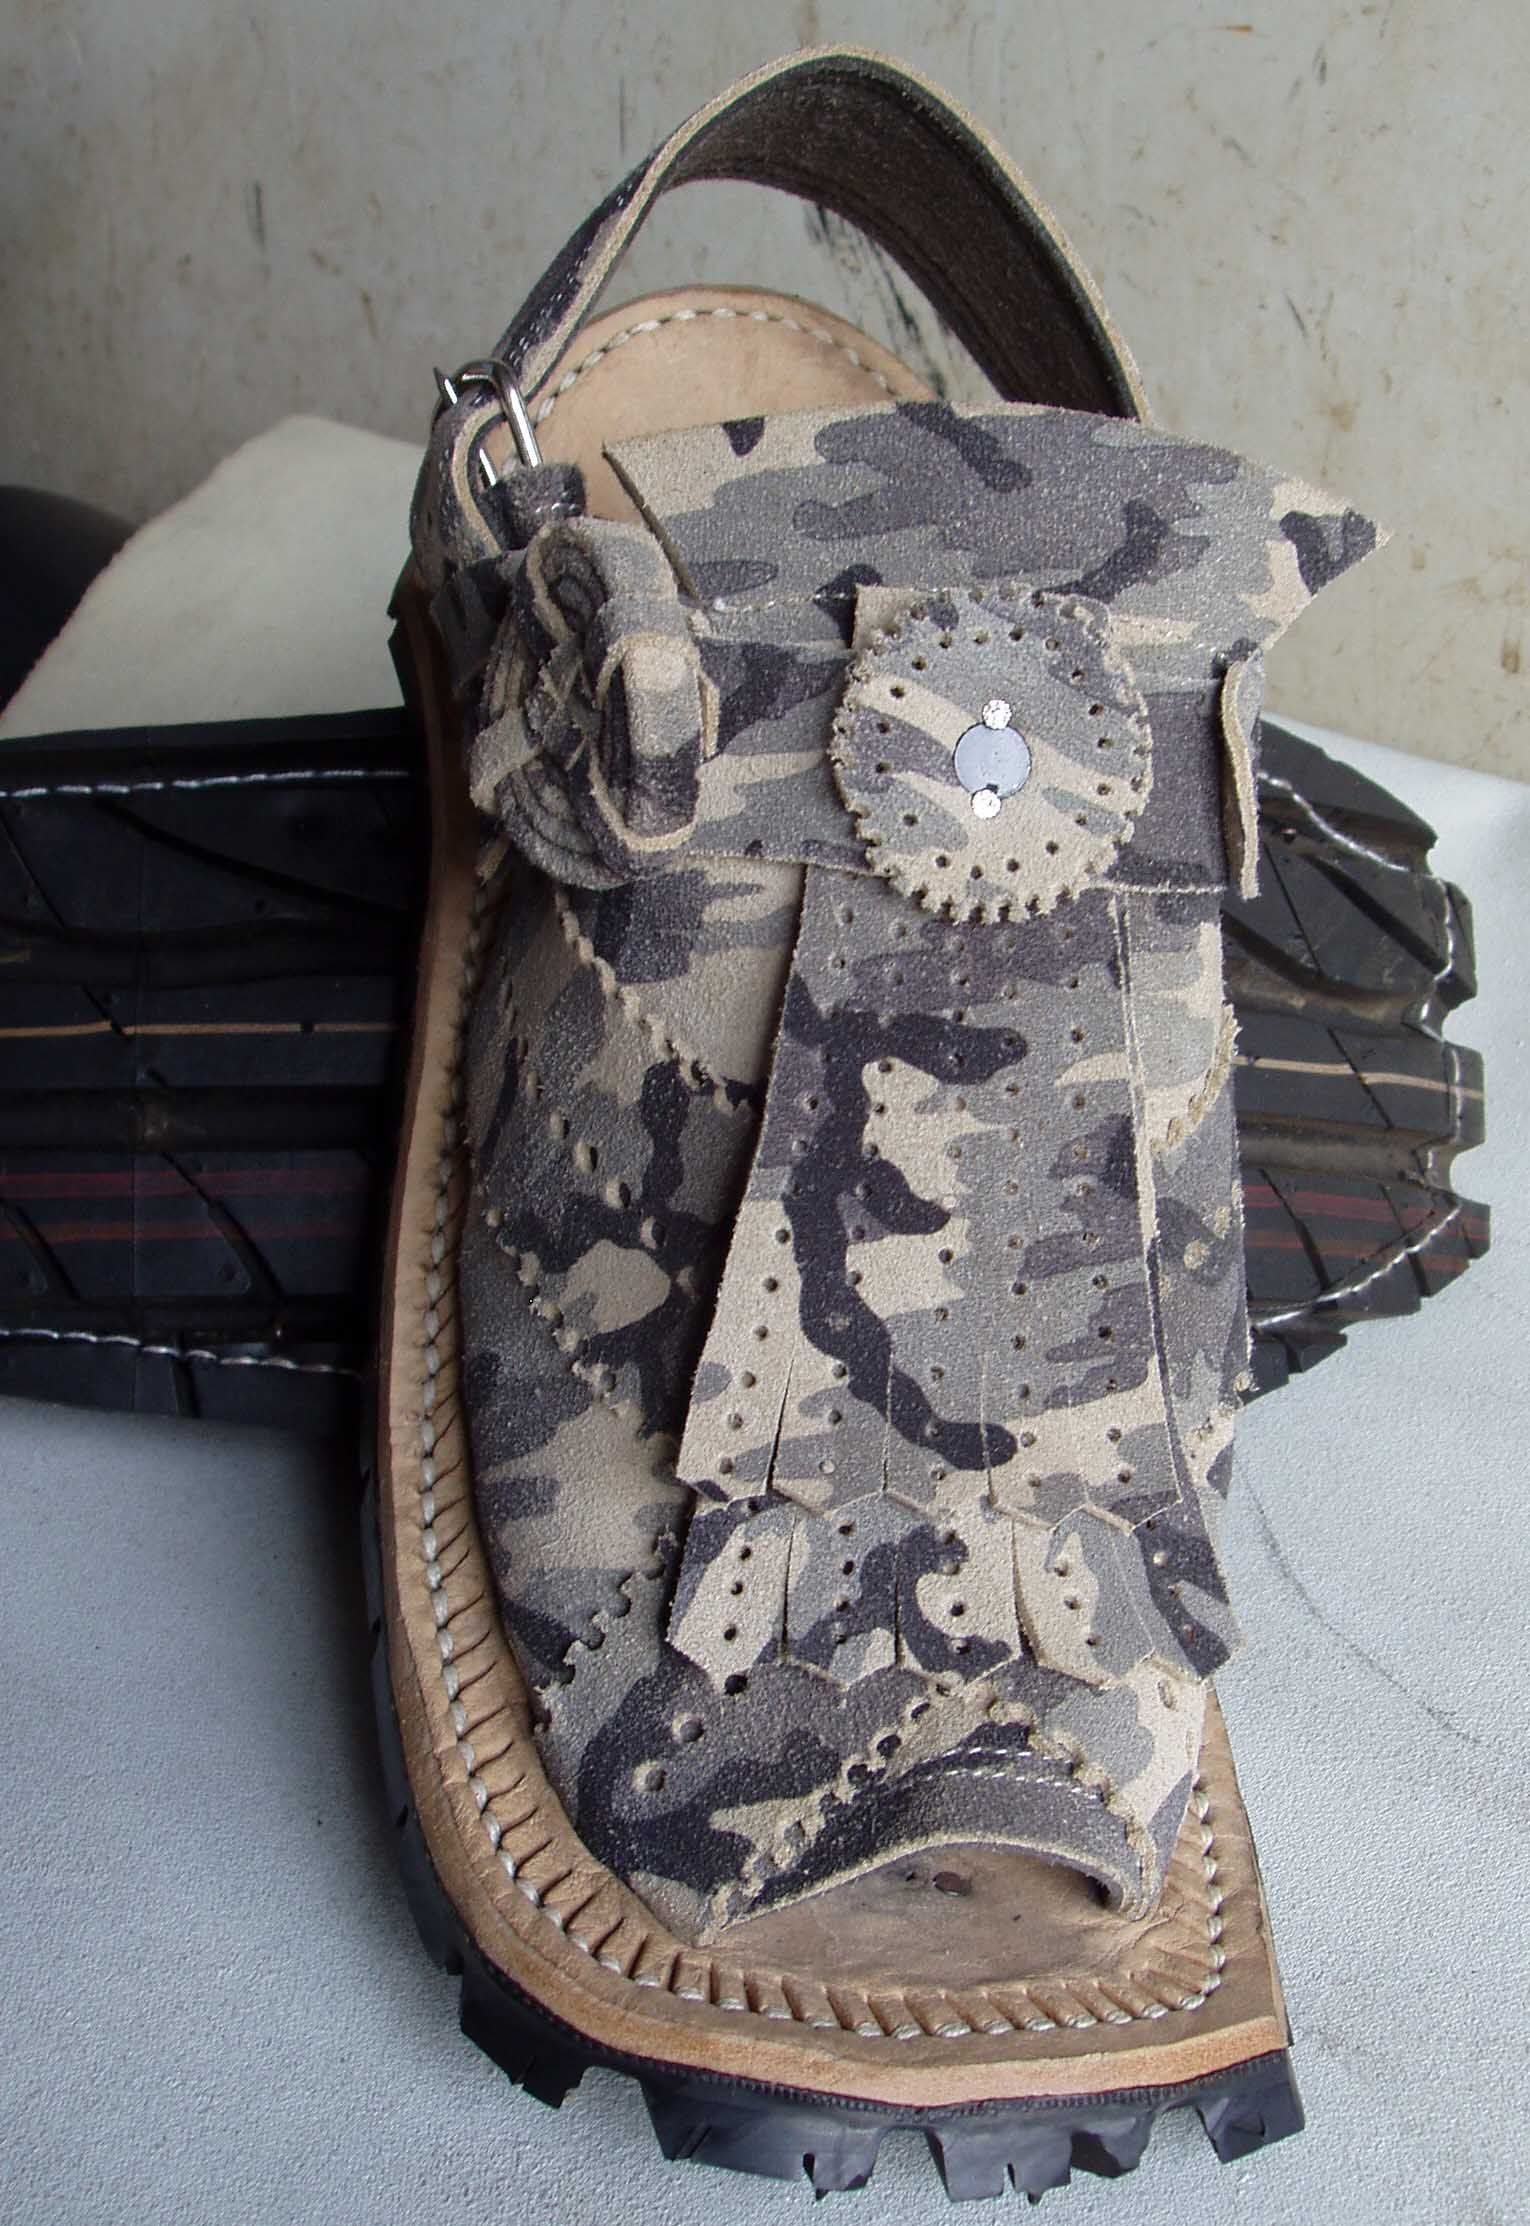 Balochi Turpang Sandals Product Information: Product Code: MF-008 Balochi  Handmade Leather Sandals – Turpang (Camouflage) 100% Handmade, Pure Leather  Price: ...